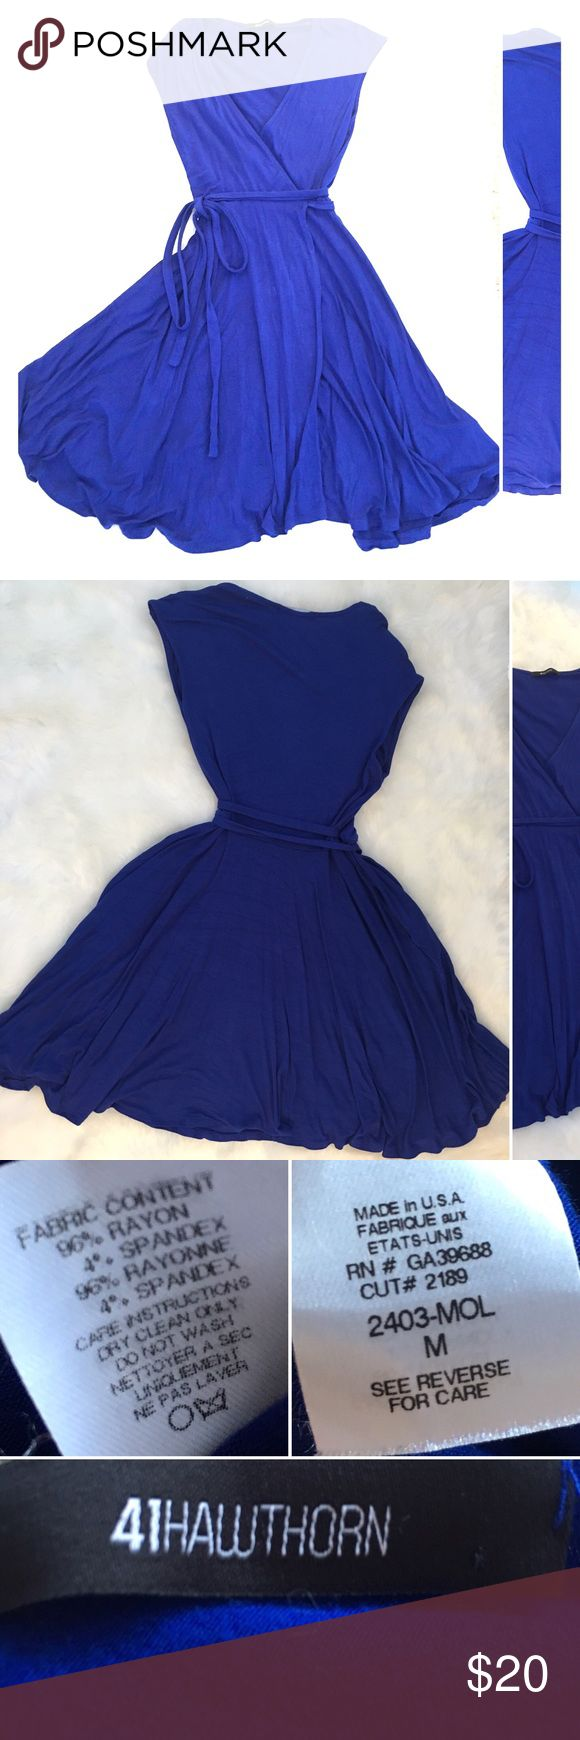 41Hawthorn - Calafia Jersey Wrap Dress PRICE DROP! HAS POCKETS! Comfortable chic blue wrap dress. Versatile, can be dressed up or down. Received as part of a Stitch Fix package. Open to bundling and price negotiation with multiple purchases! 41 Hawthorn Dresses